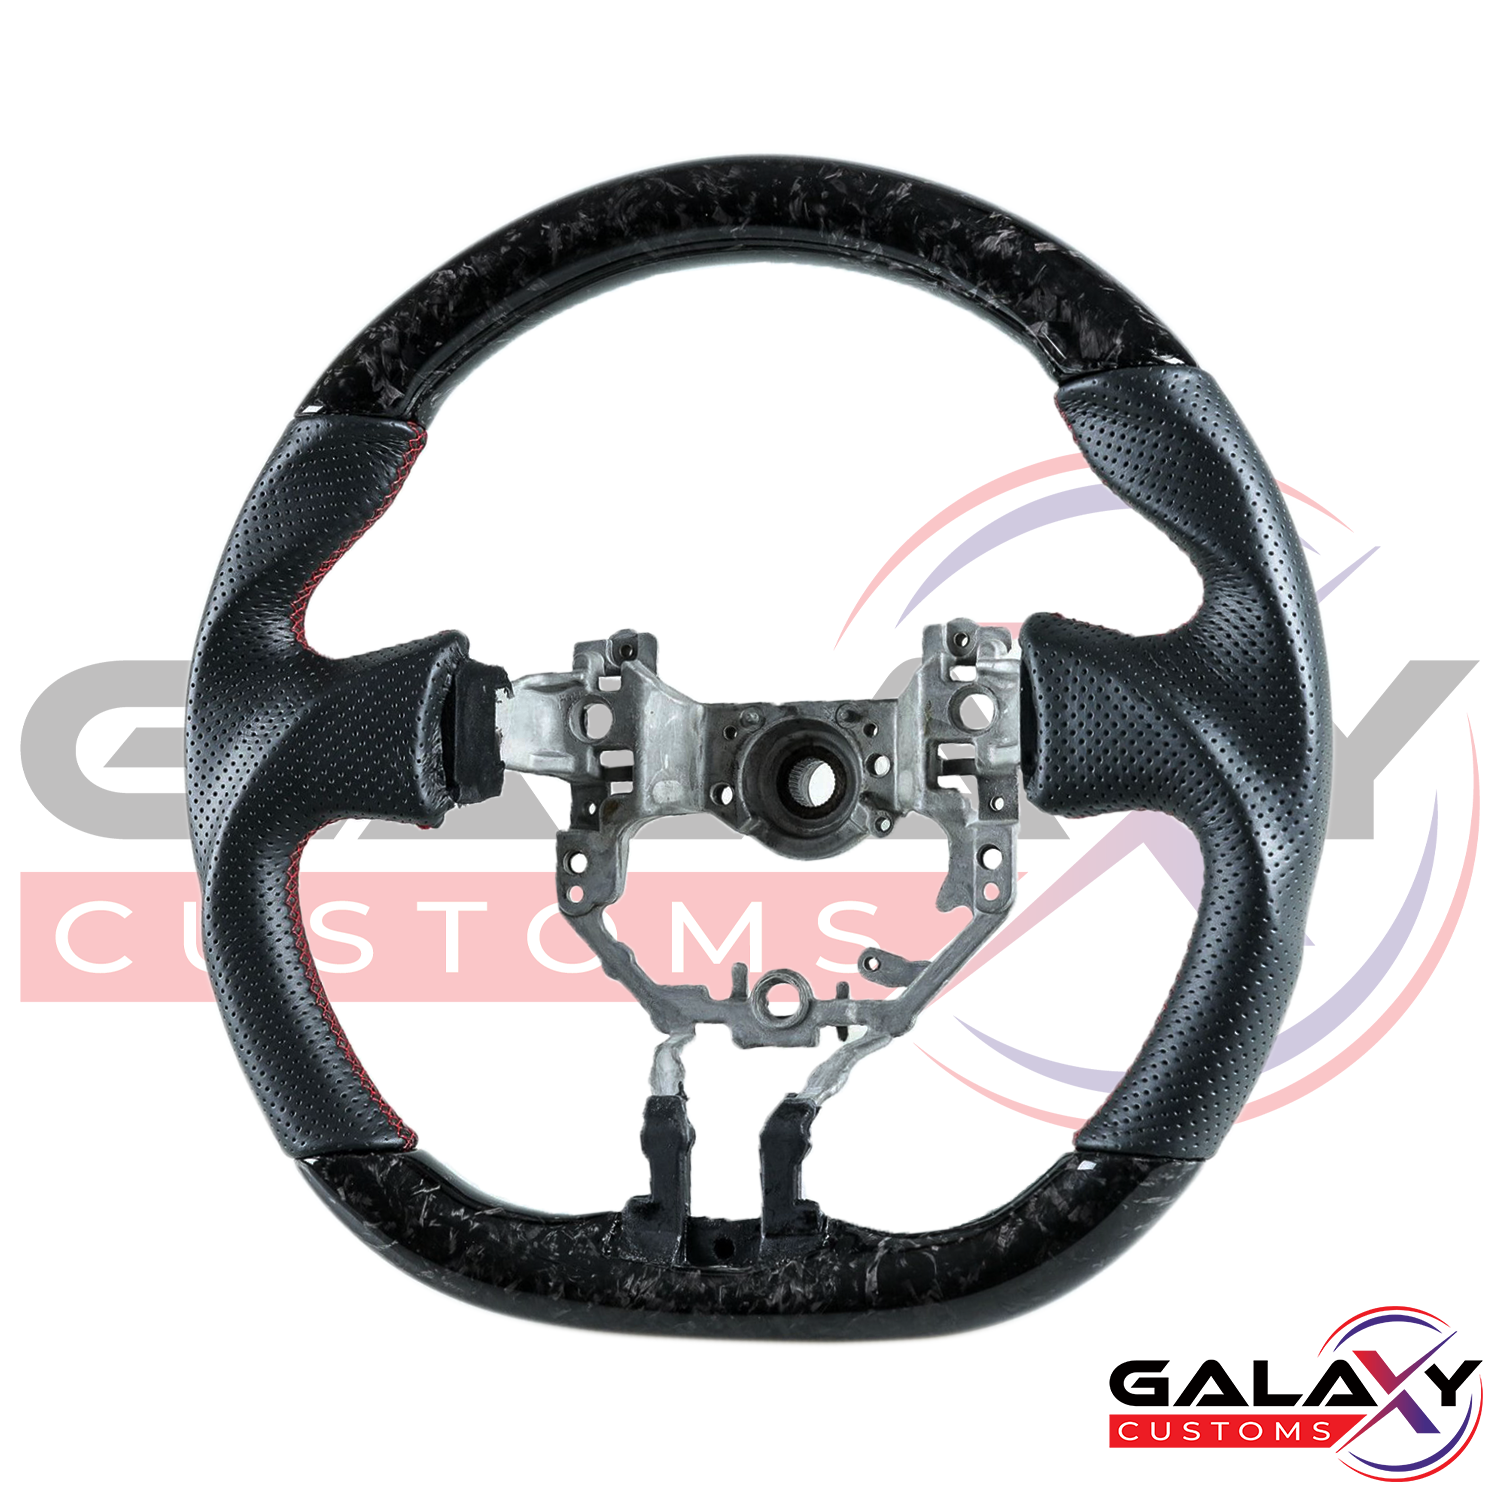 Galaxy Customs - Forged Carbon Fiber Steering Wheel